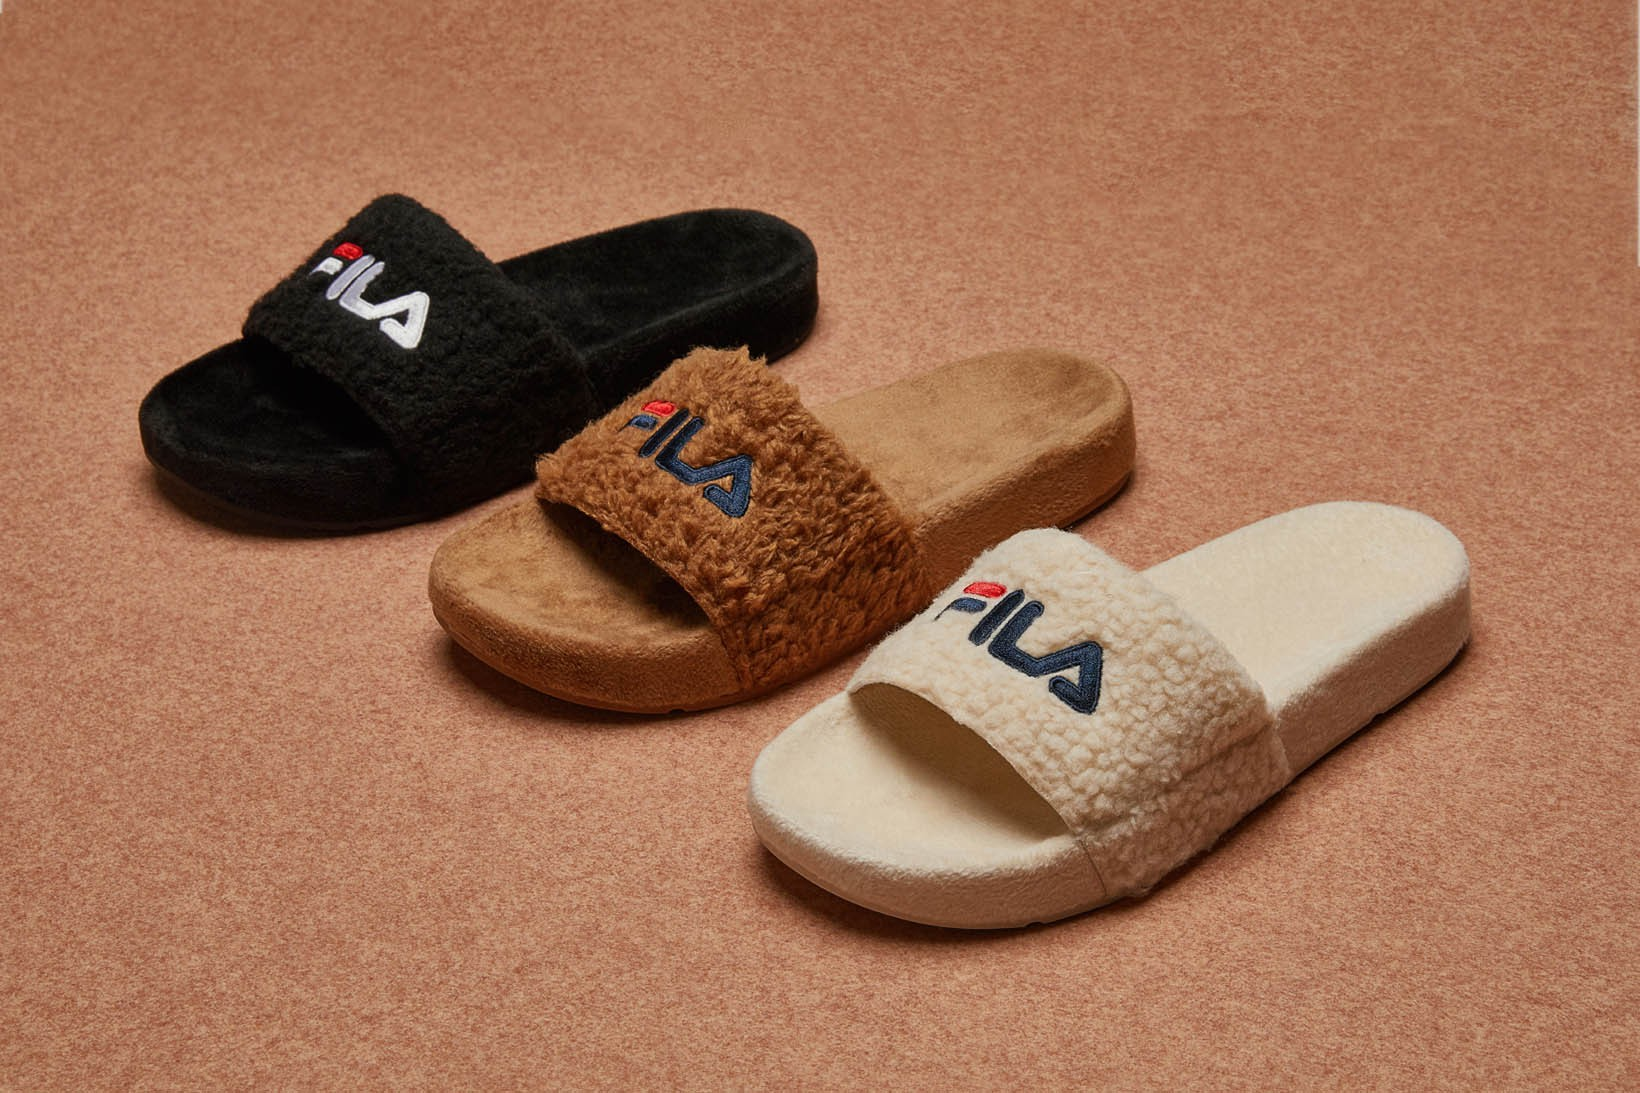 FILA Furry Slides in Brown, Black and